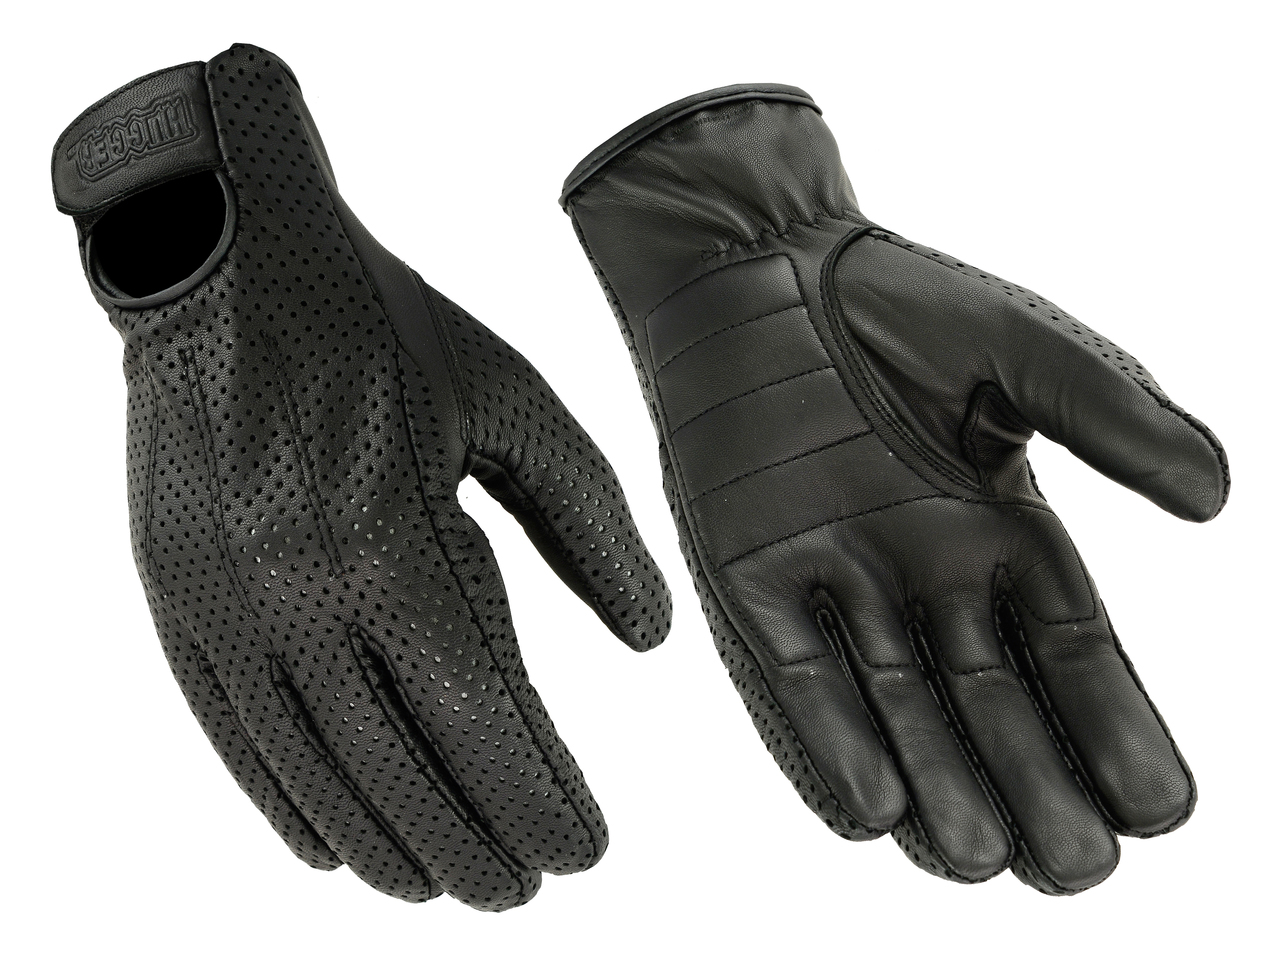 Men's Unlined Technaline Goatskin Leather, Quick Dry Gloves with Gel Palm (M.WLG)